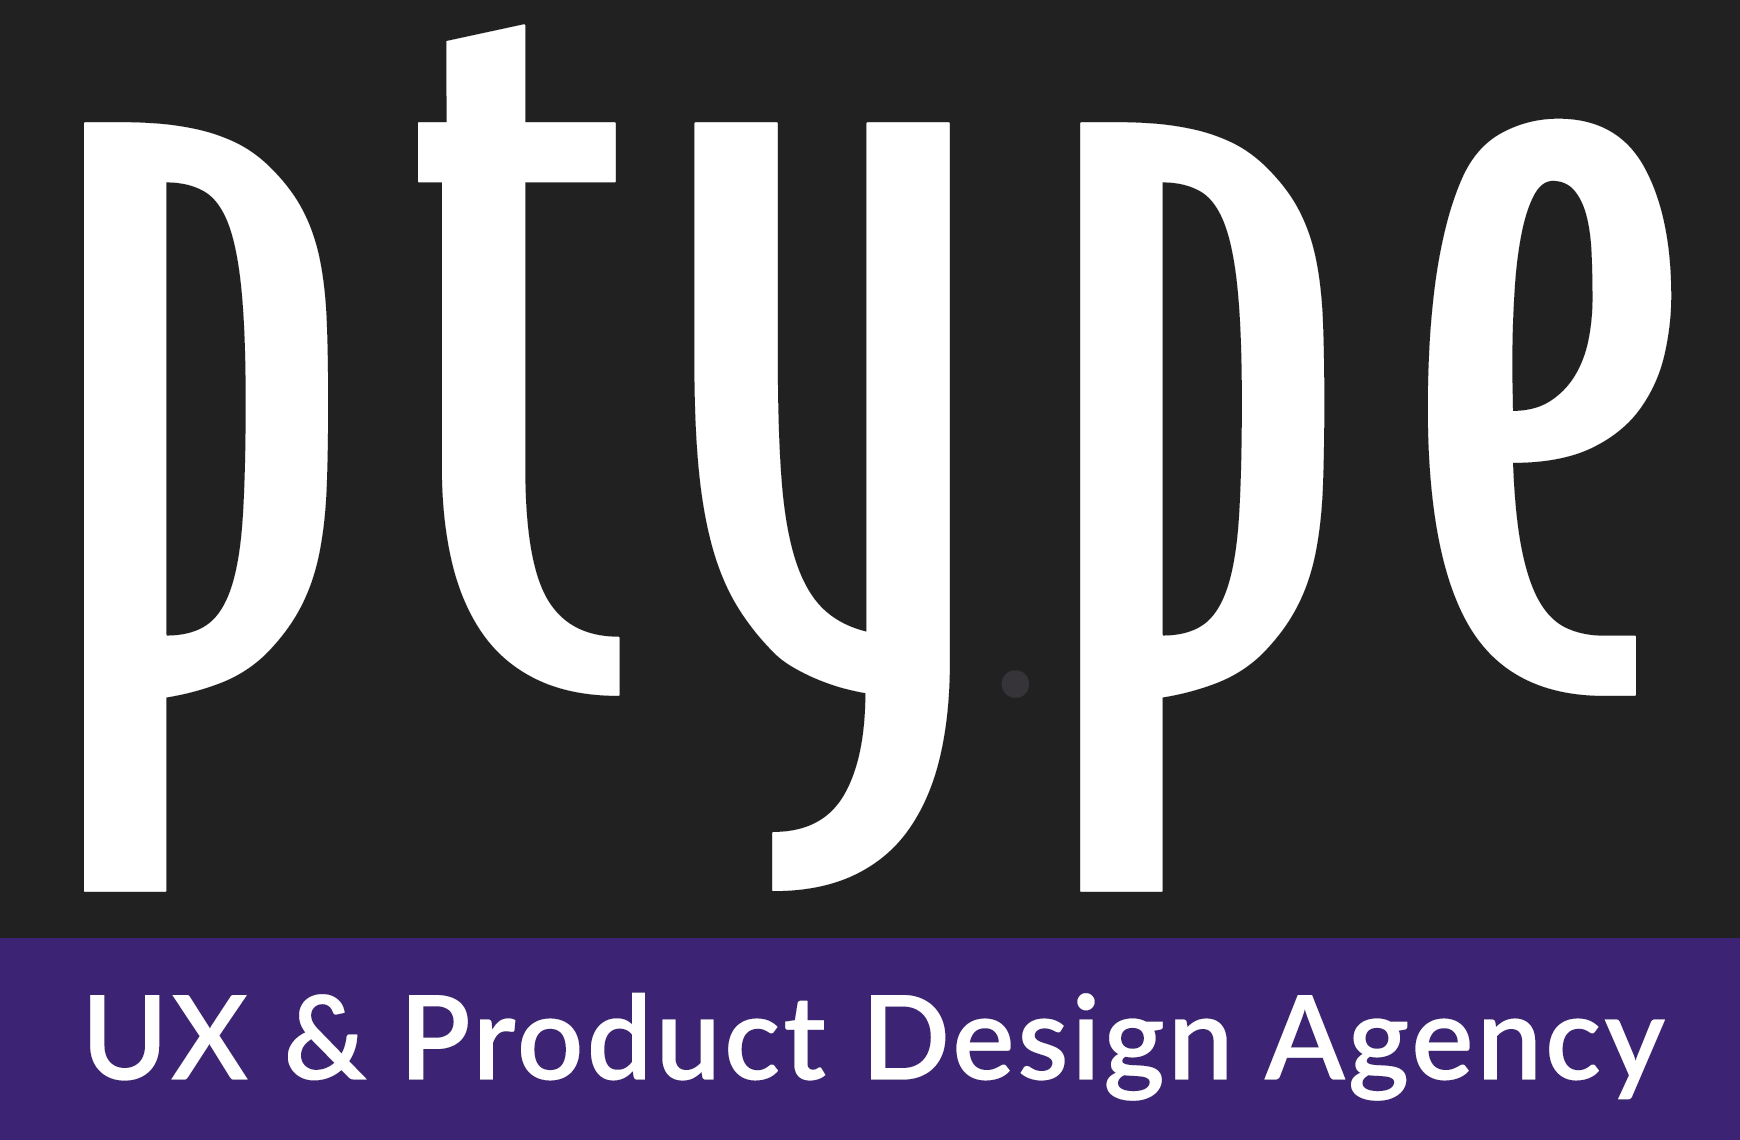 Ptype UX & Product Design Agency Logo